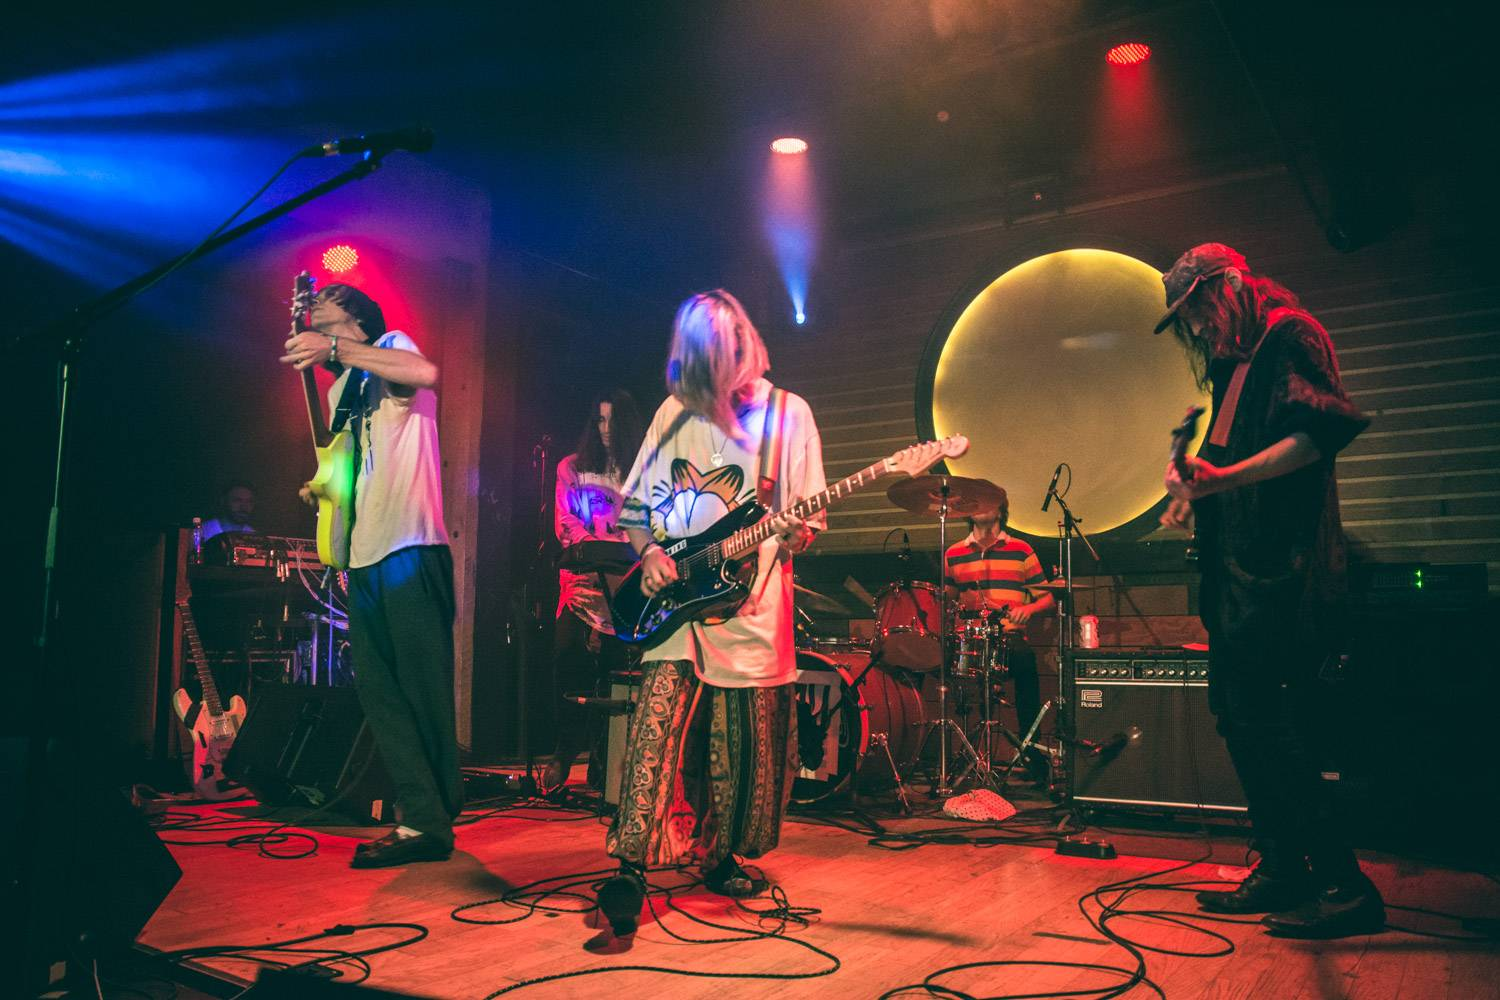 DIIV at Fortune Sound Club, Vancouver, Oct 20 2015. Pavel Boiko photo.